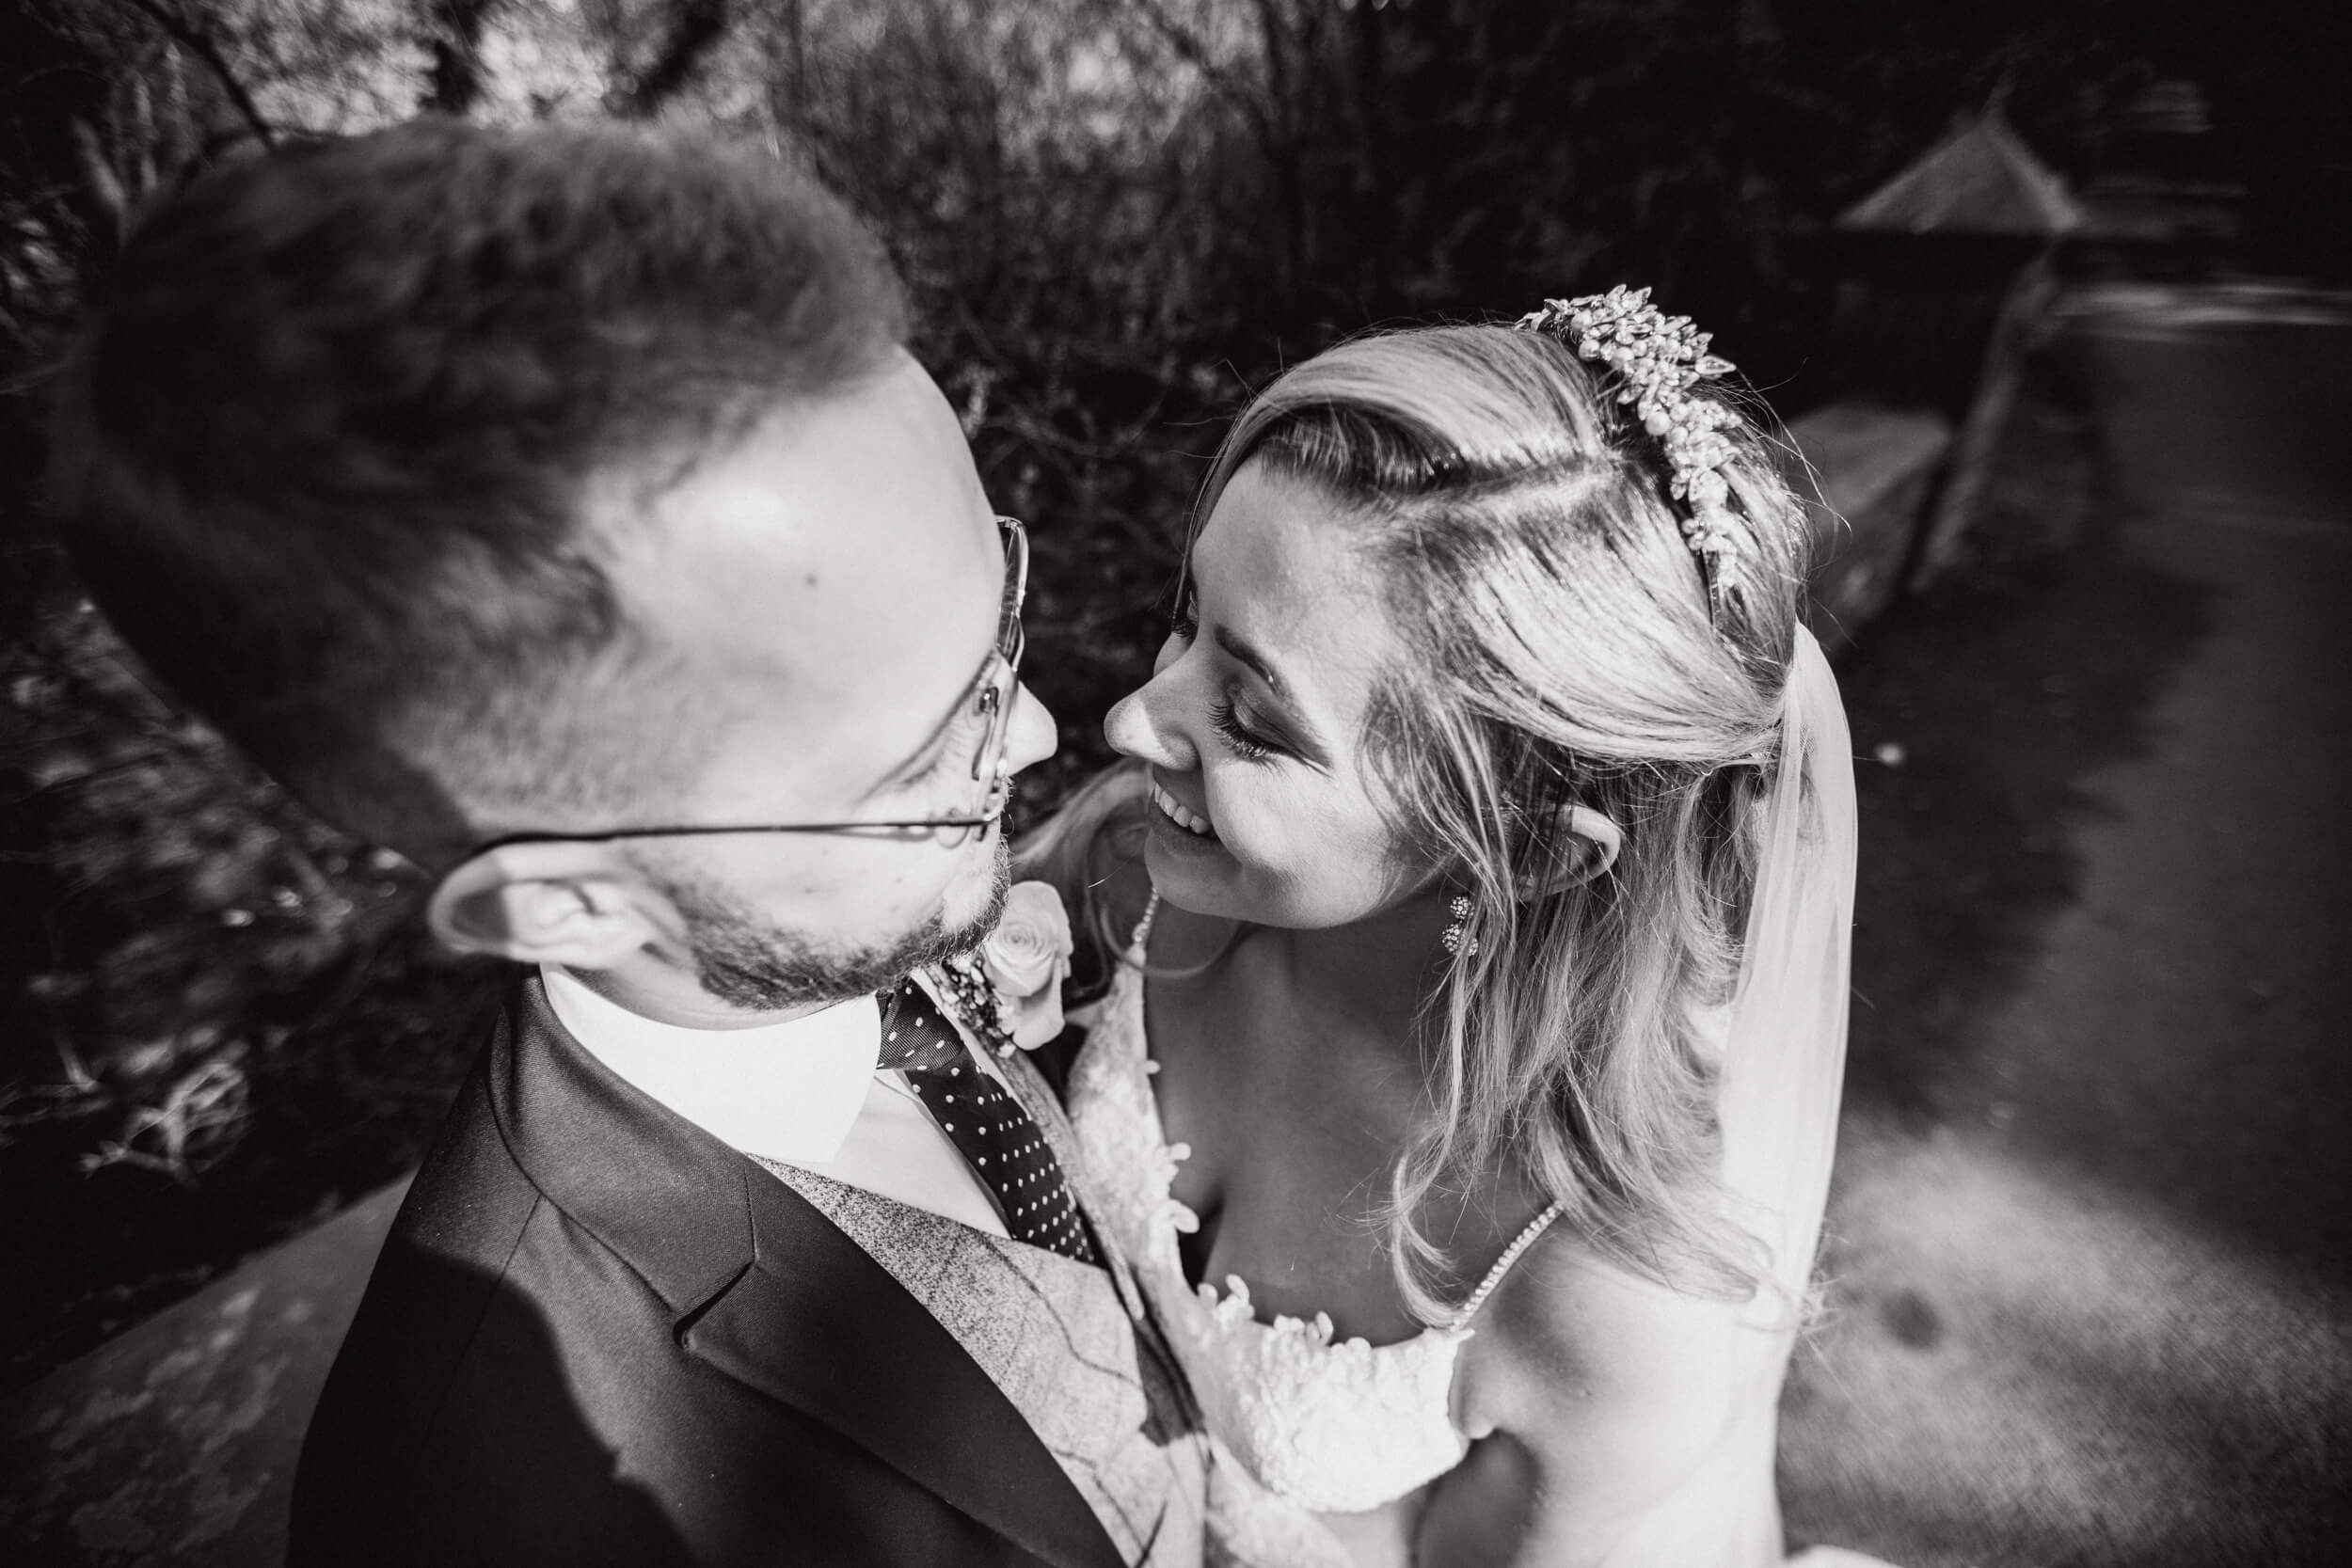 black and white intimate photograph of bride and groom